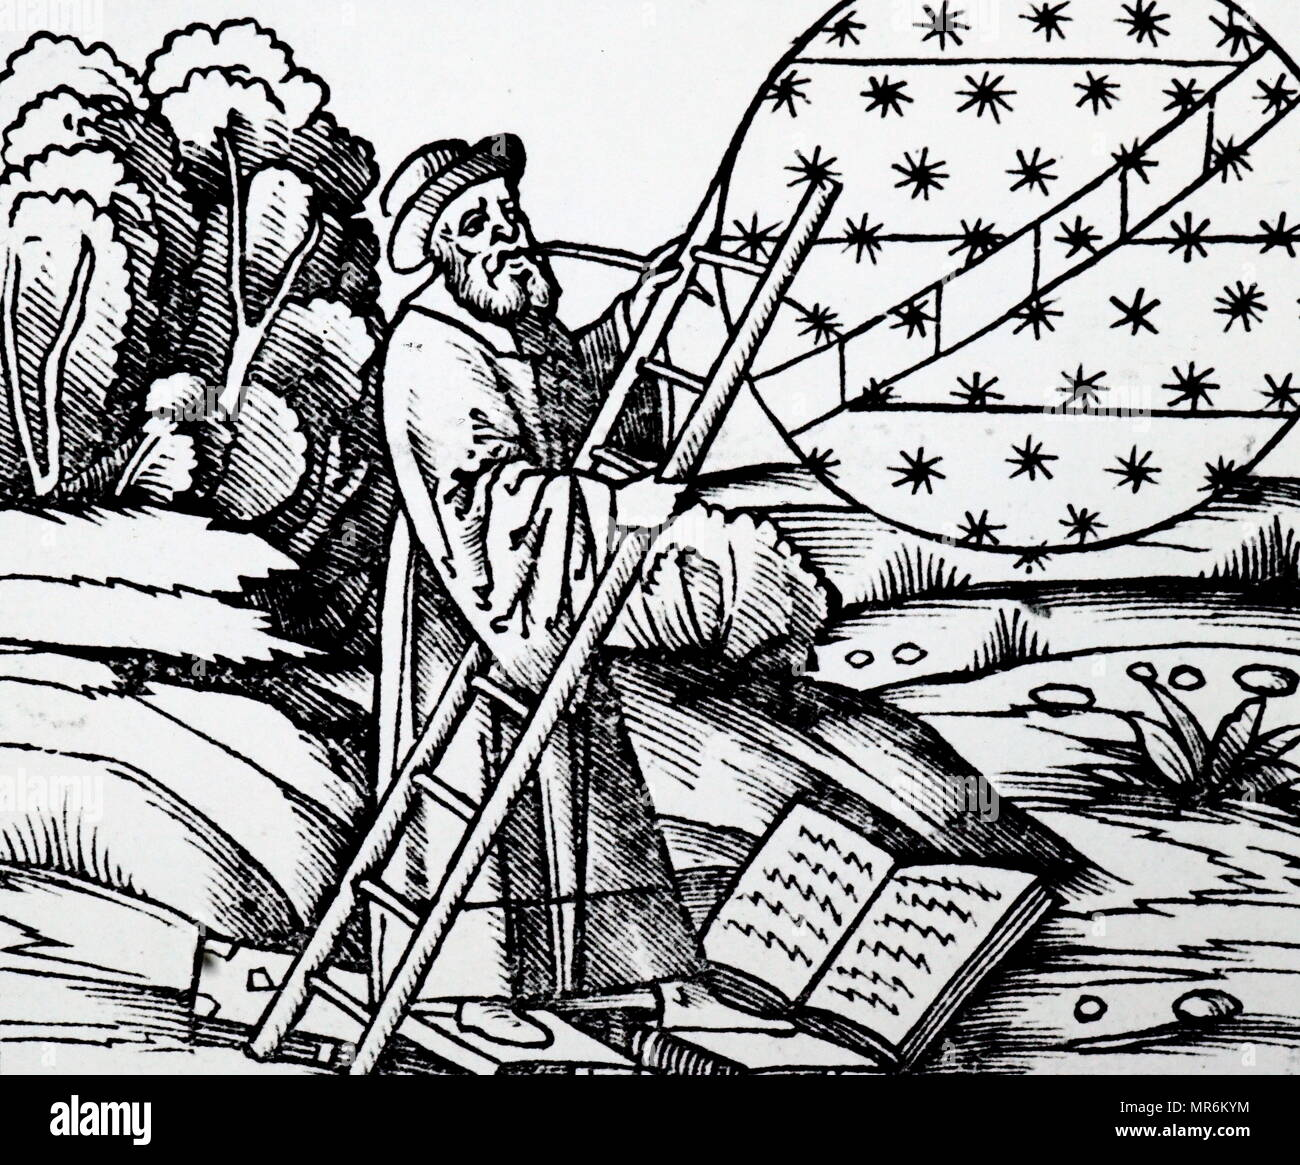 Woodblock Engraving Depicting Jacobs Ladder The Connection Between Earth And Heaven That Biblical Patriarch